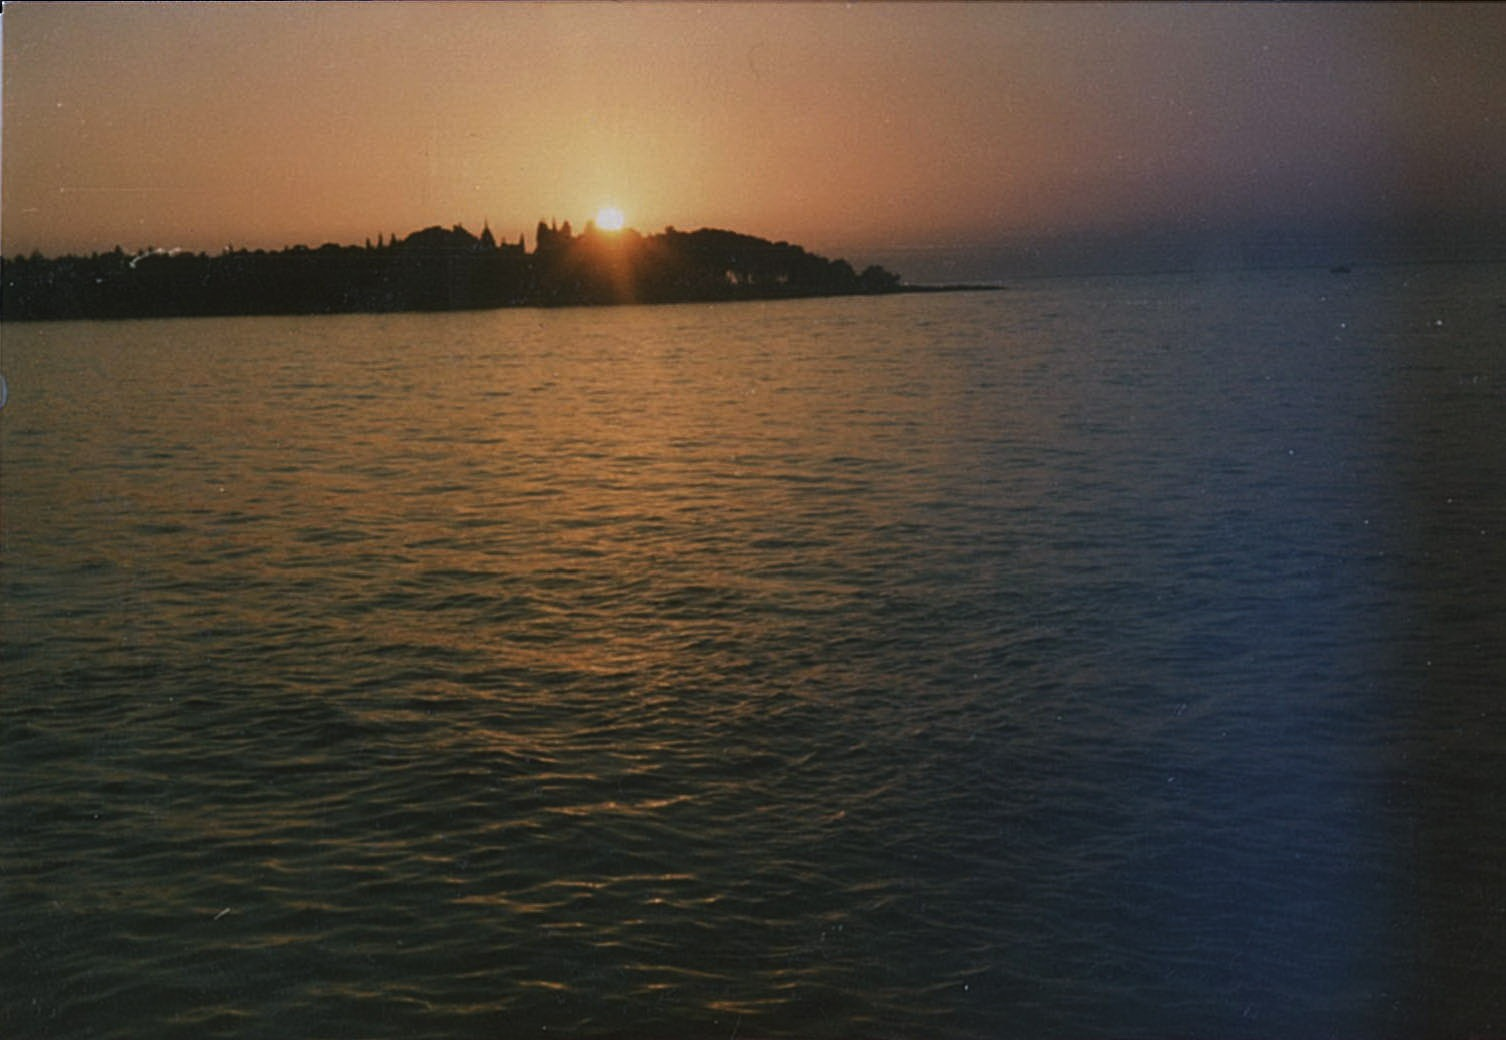 Sunset (analog) by Geigercounterculture